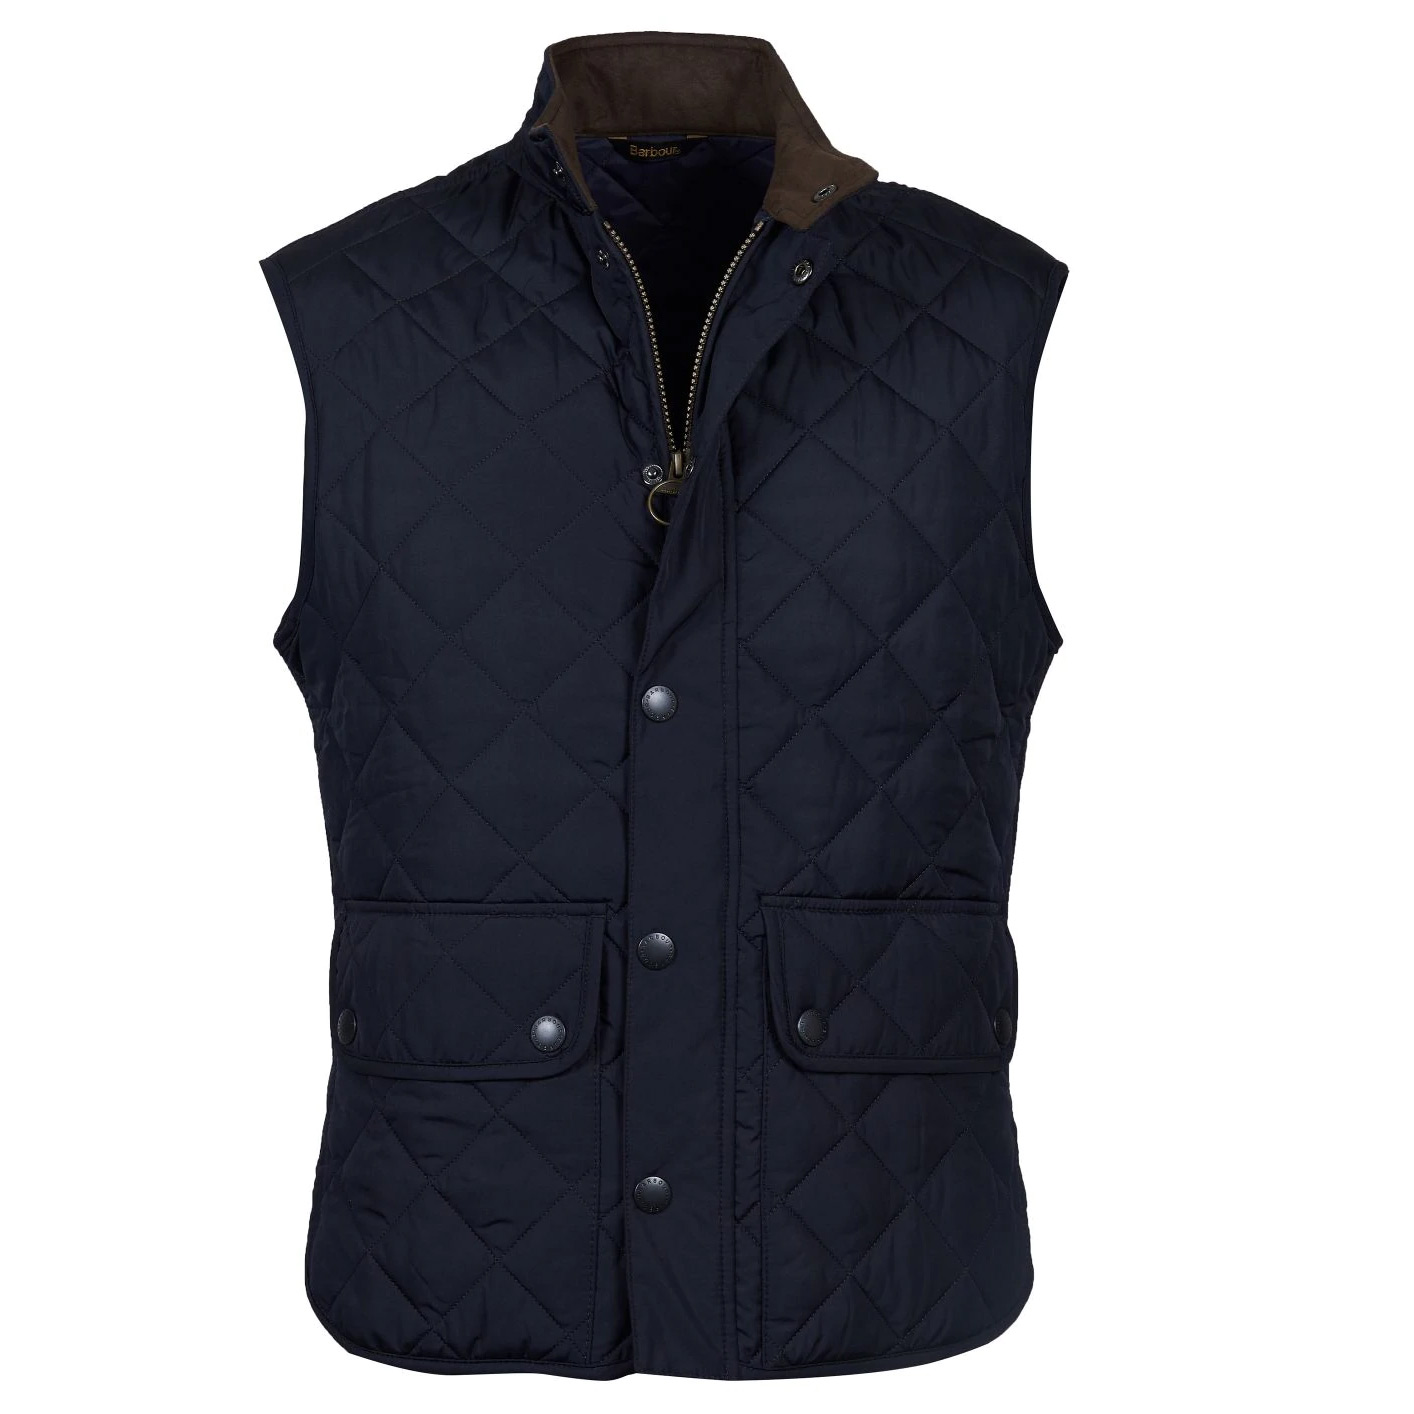 Heren bodywarmer Lowerdale navy